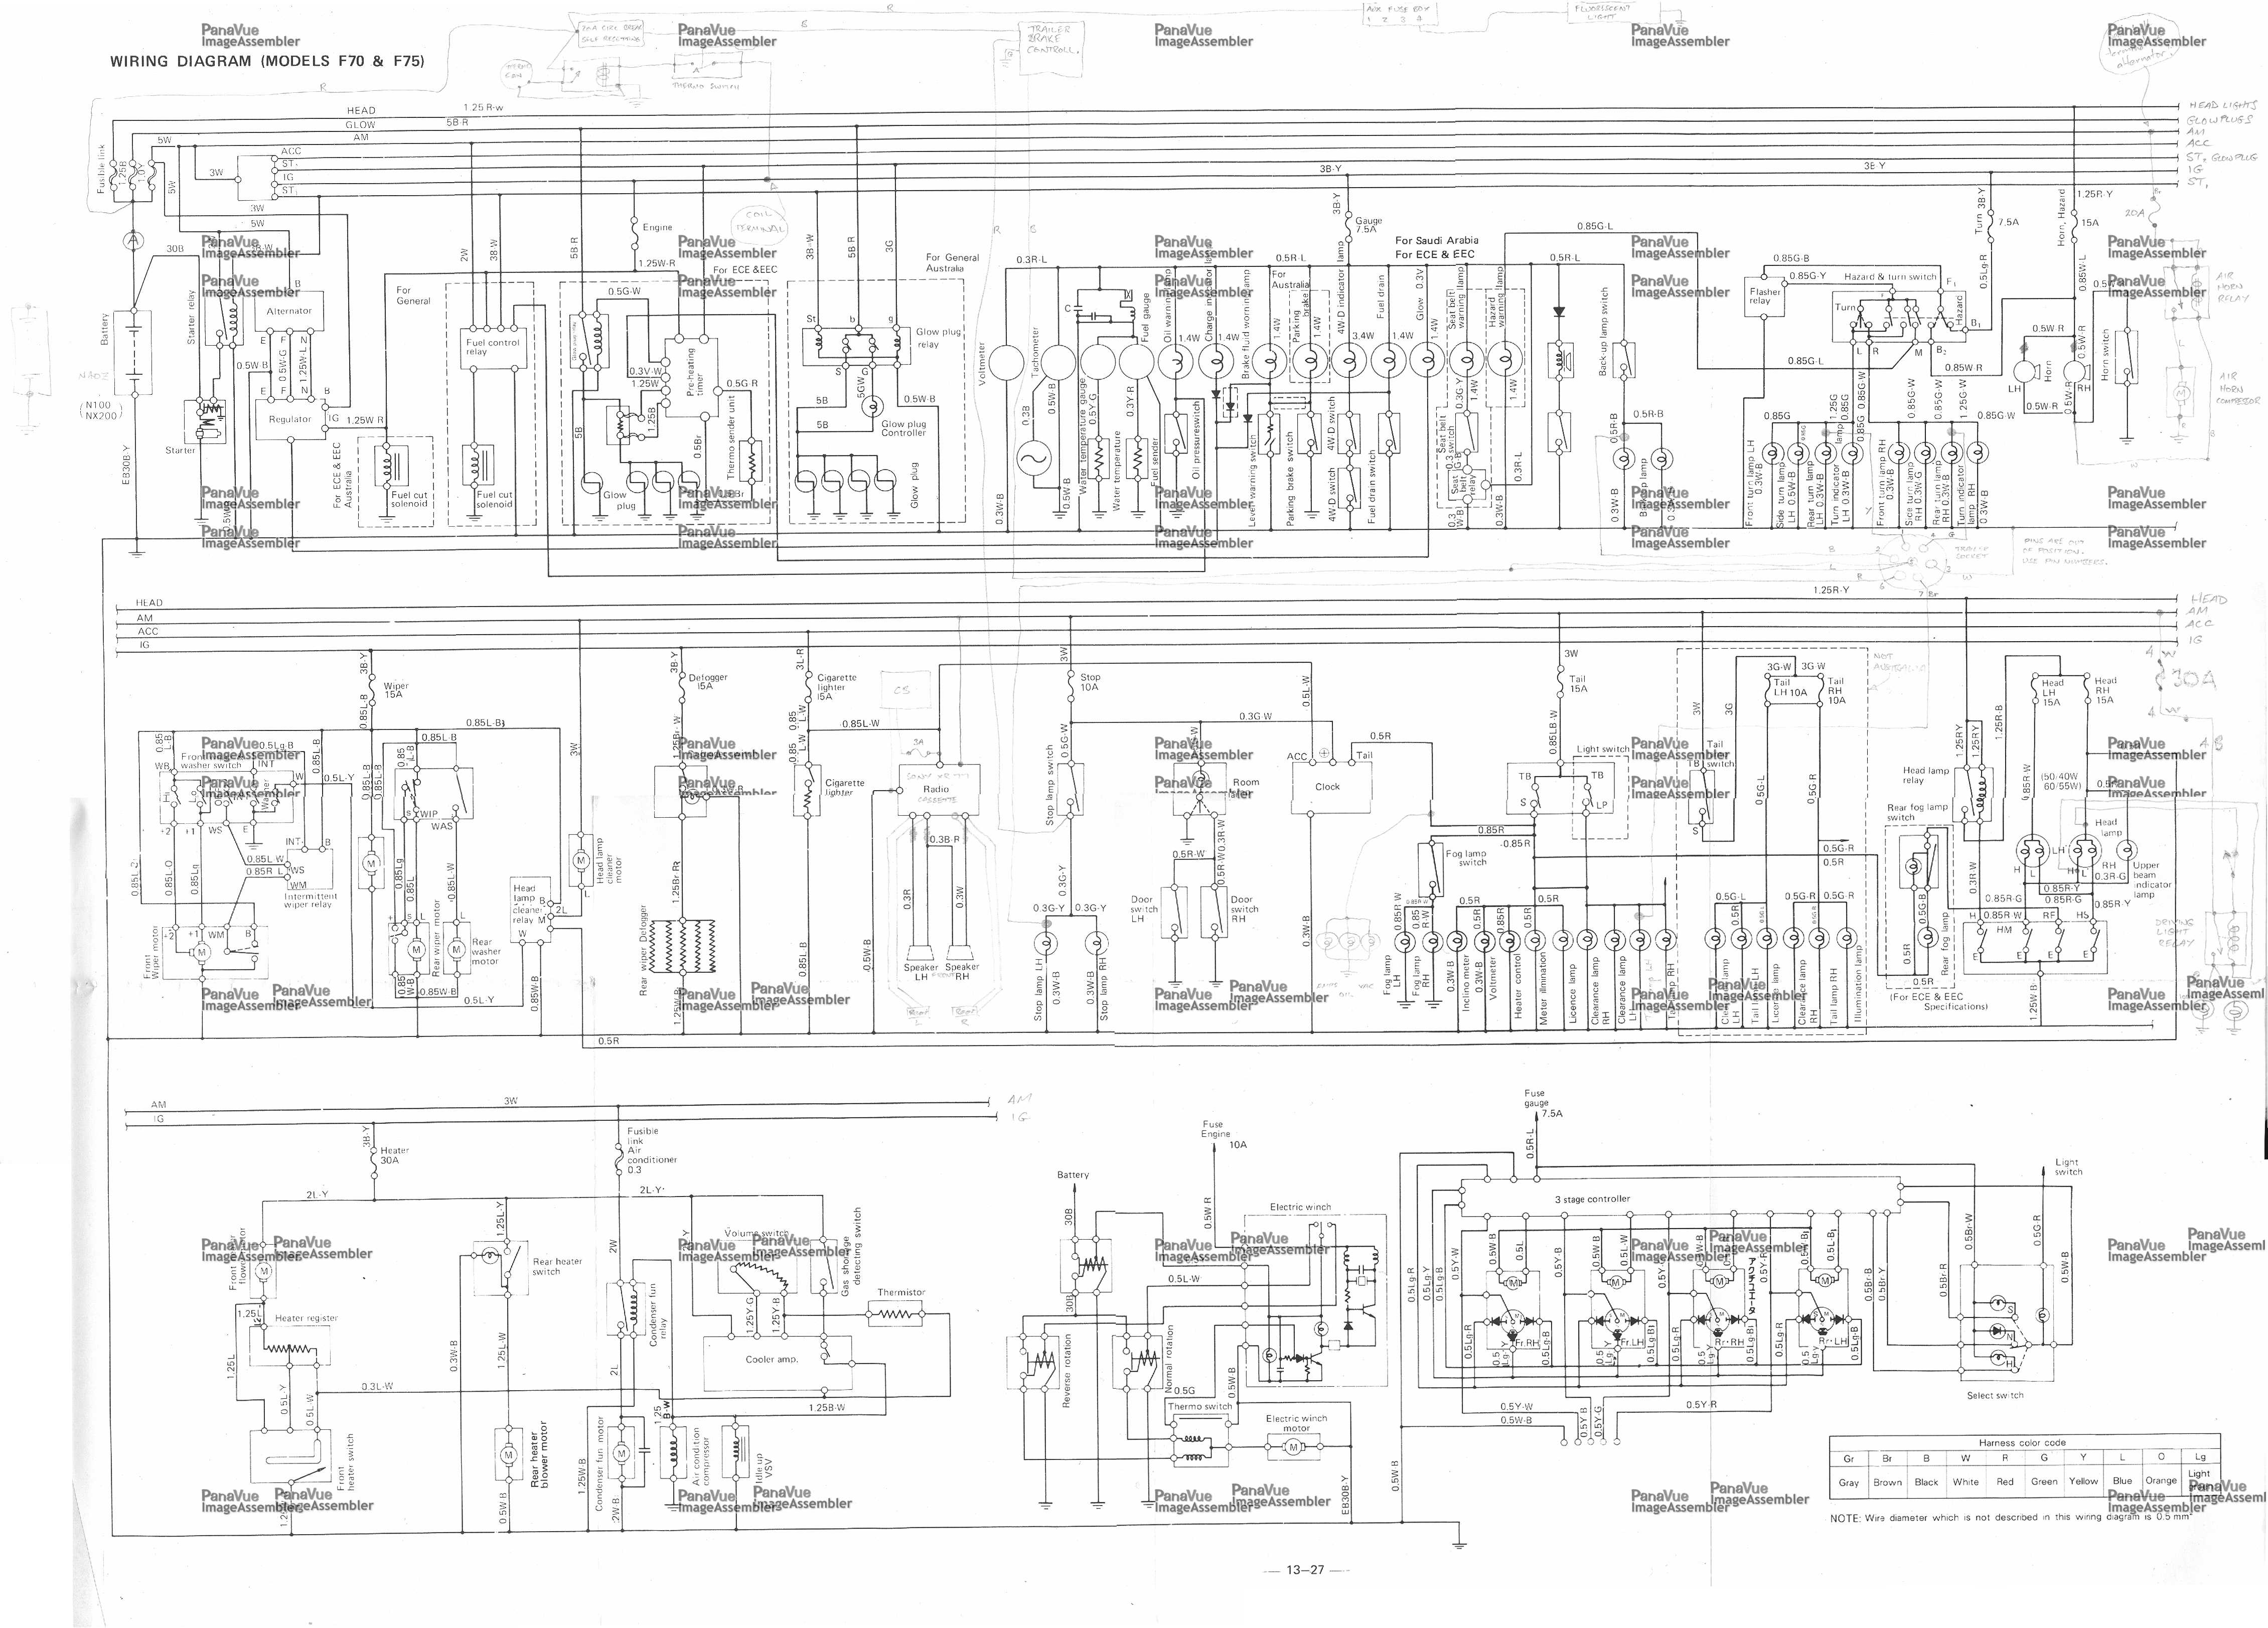 Wii U Wiring Diagram Auto Electrical Guitar Wire For Daihatsu Charade Workshop Manual 2003 Gratis